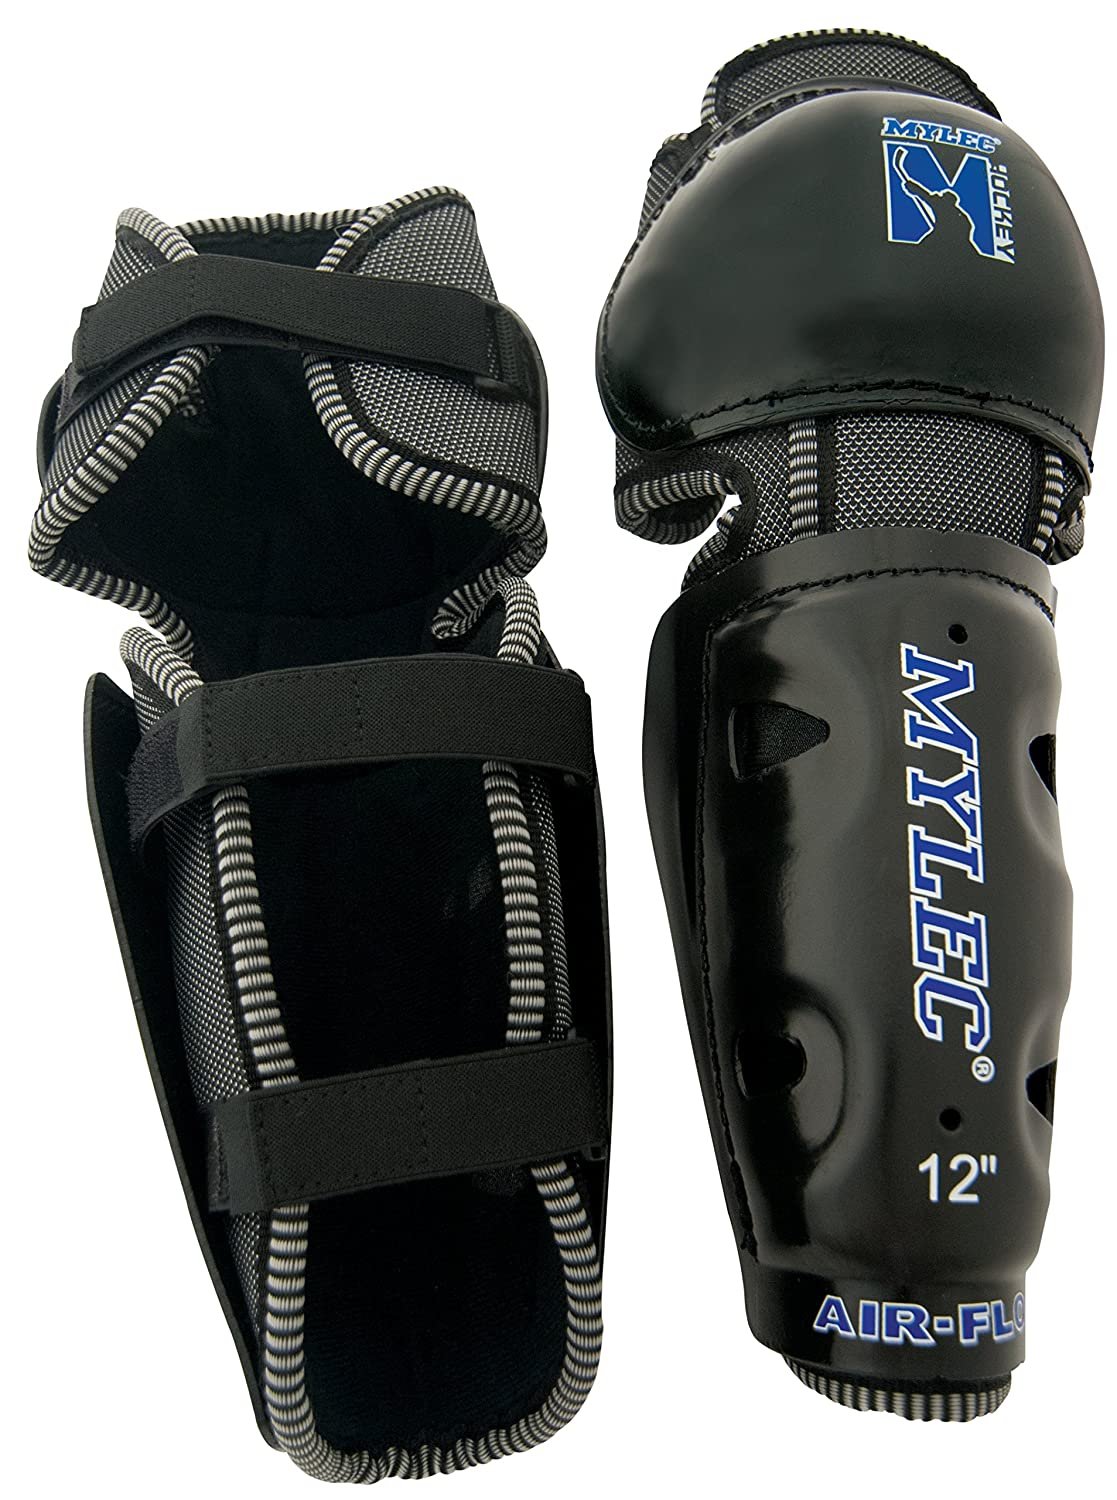 Mylec Dek/Roller Hockey Shin Guard